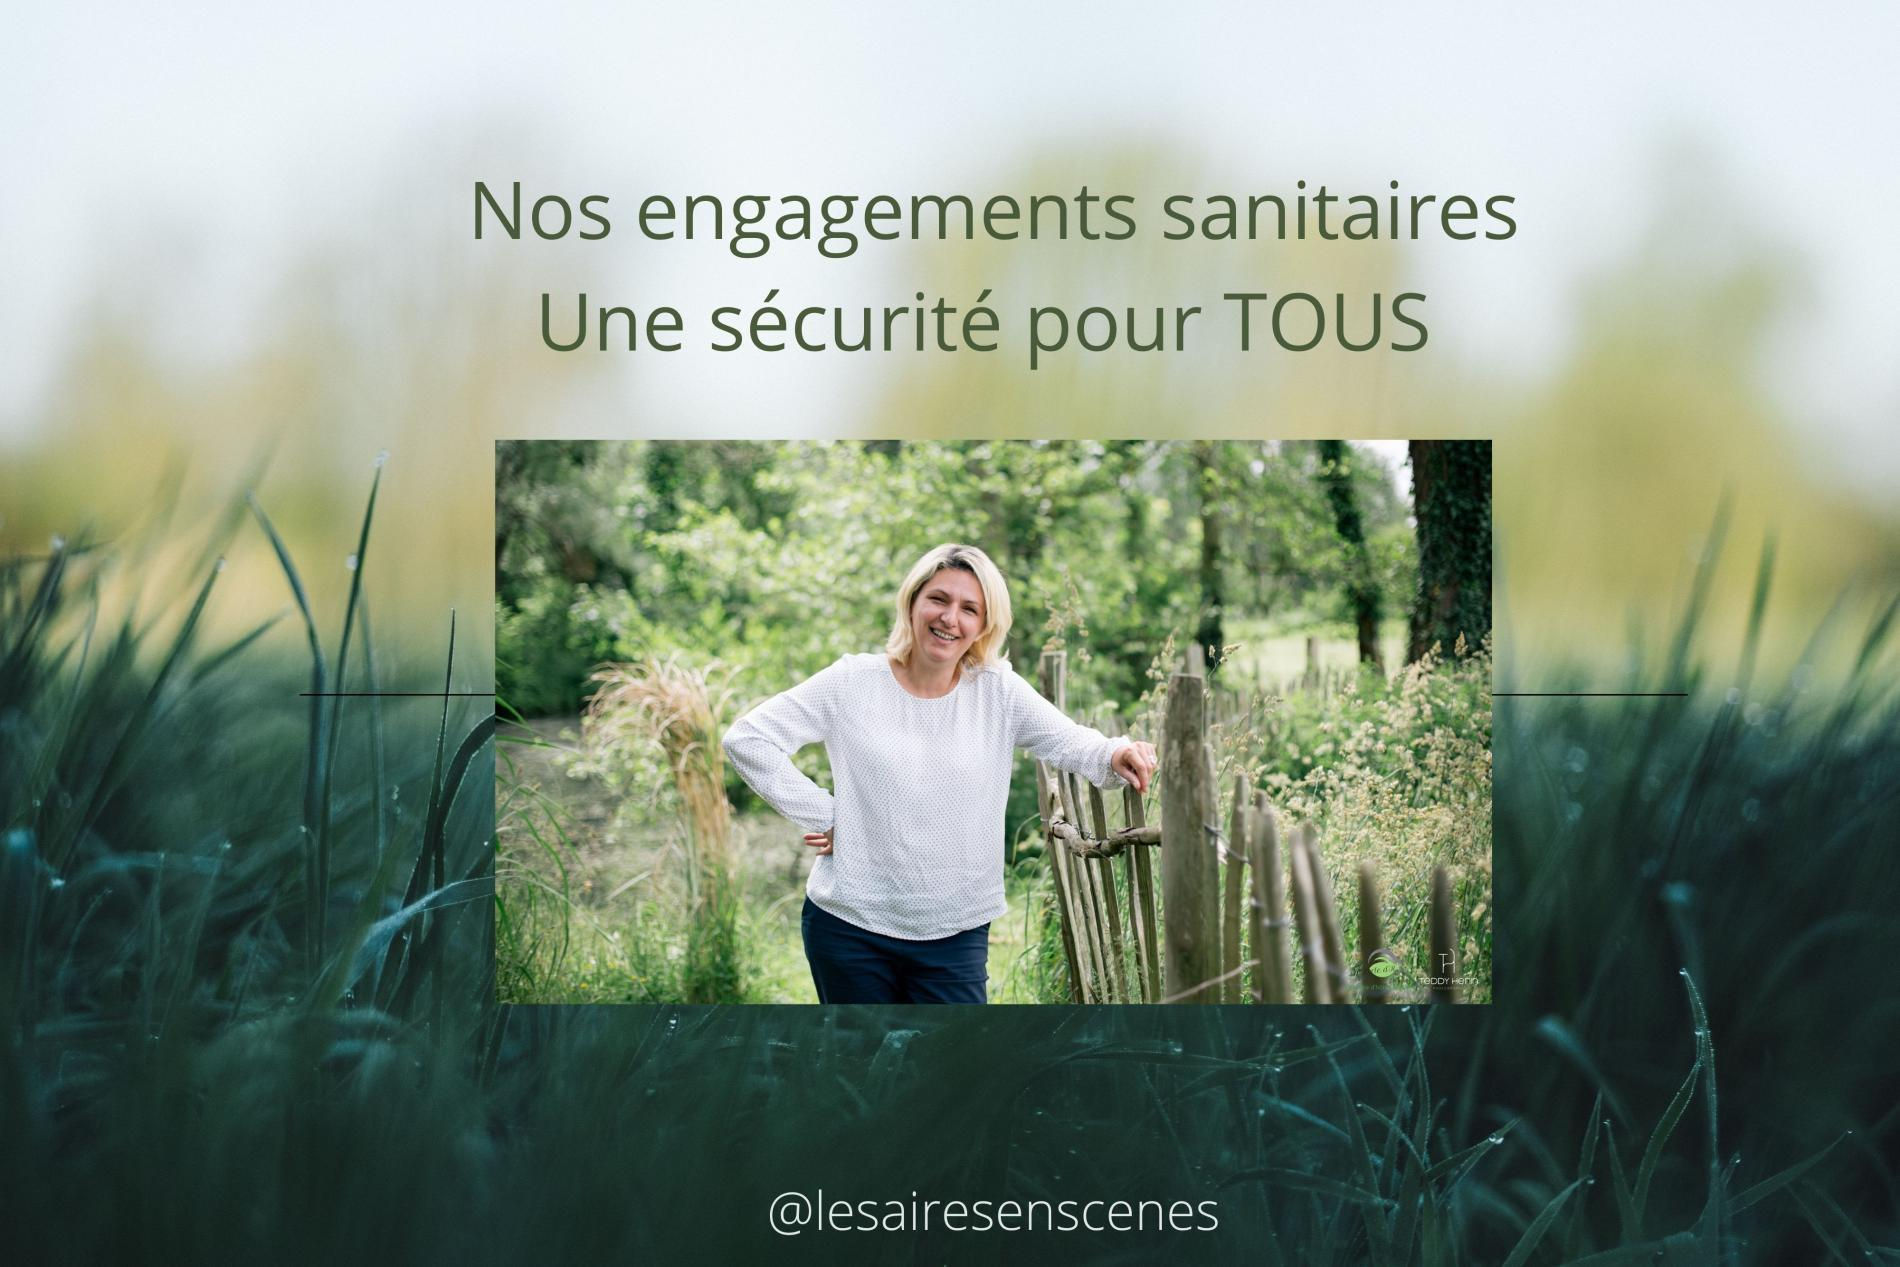 Nos engagements sanitaires